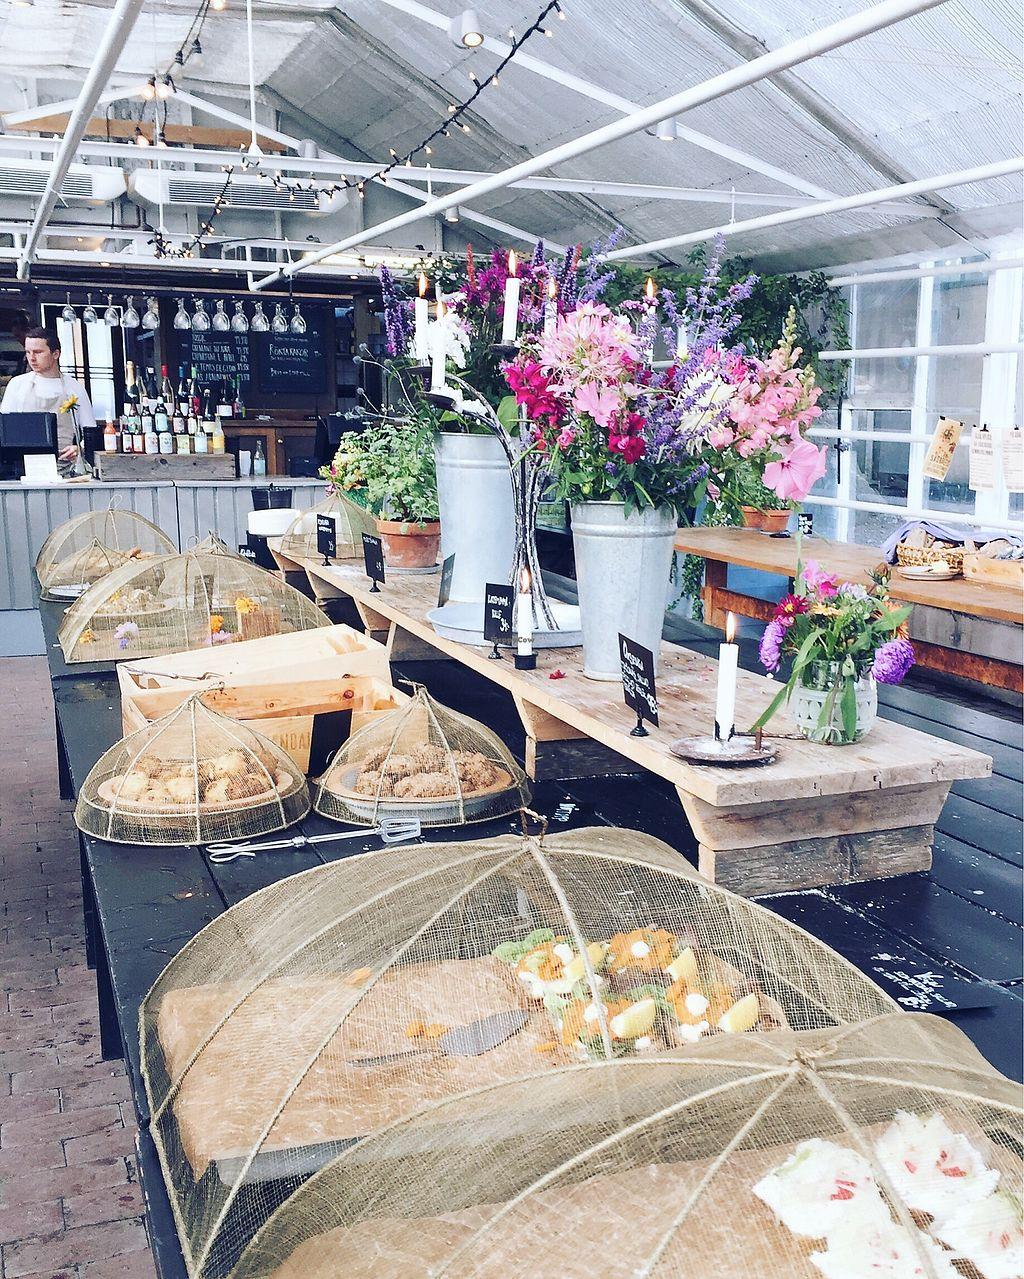 """Photo of Rosendals Tradgardskafe  by <a href=""""/members/profile/Evgenia"""">Evgenia</a> <br/>a cafe inside <br/> September 2, 2017  - <a href='/contact/abuse/image/88793/300058'>Report</a>"""